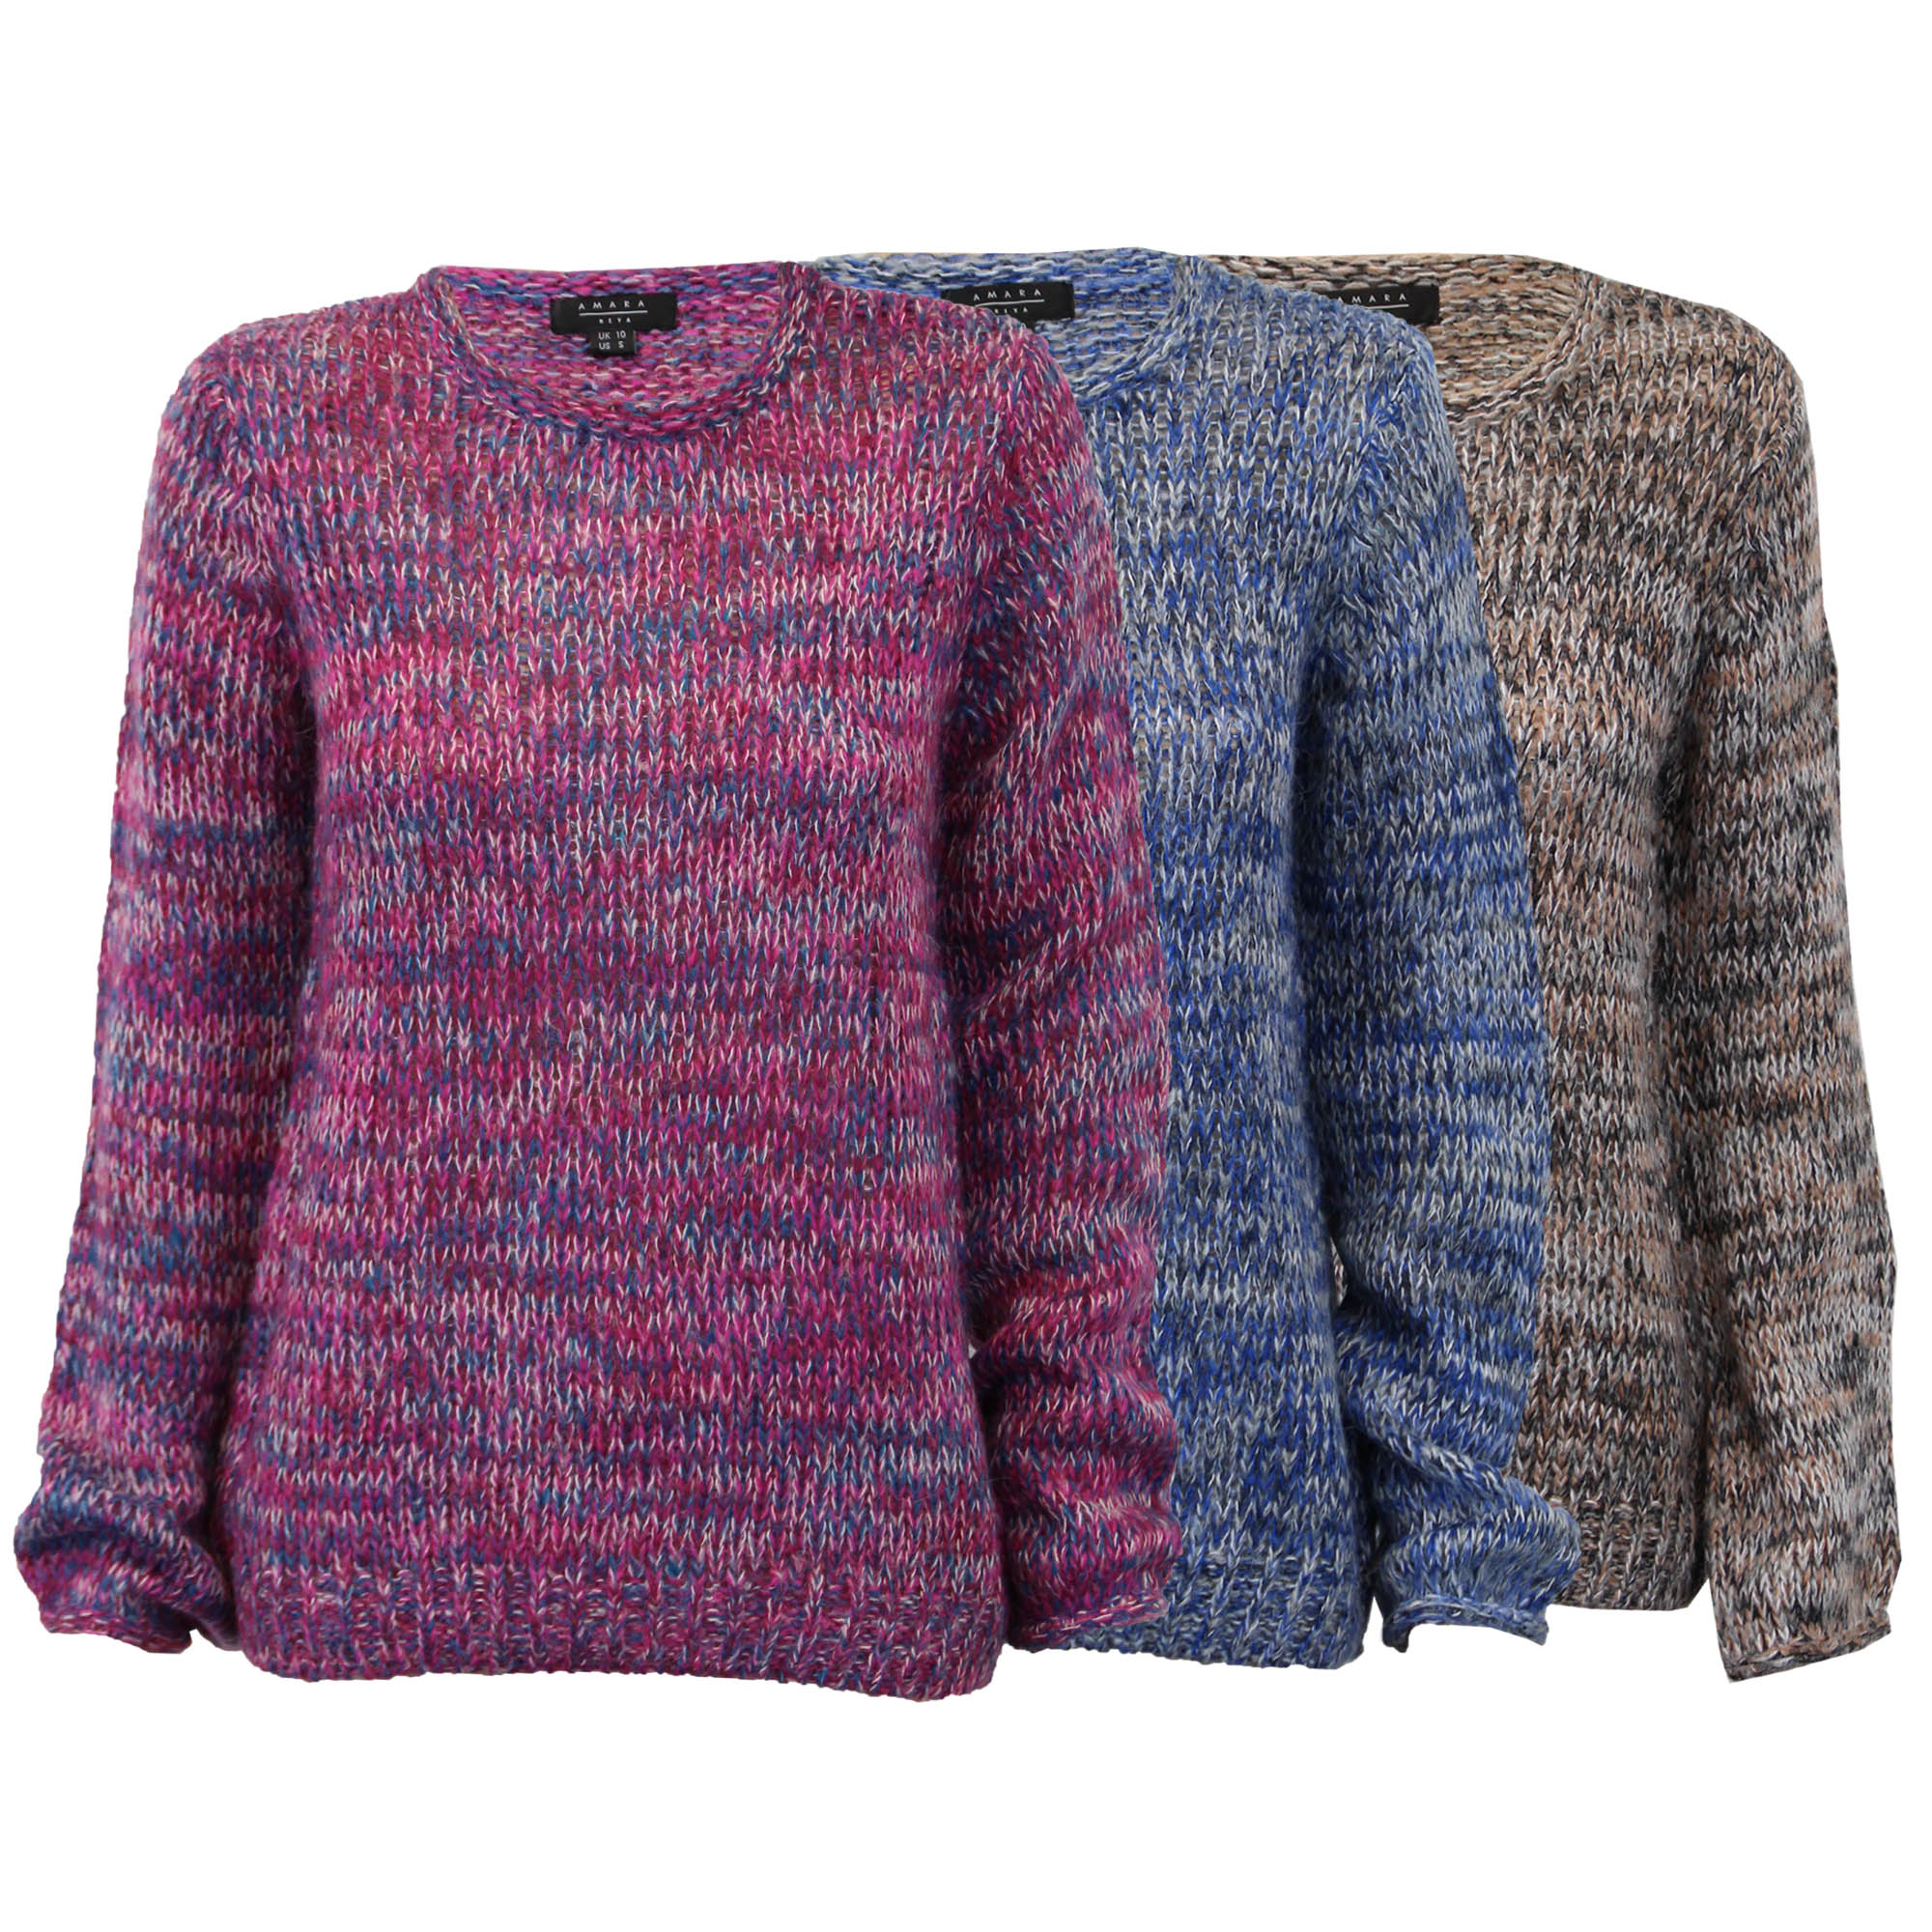 Ladies Jumpers Womens Knitted Top Pullover Sweater Casual Winter ... b8a8ebbb6